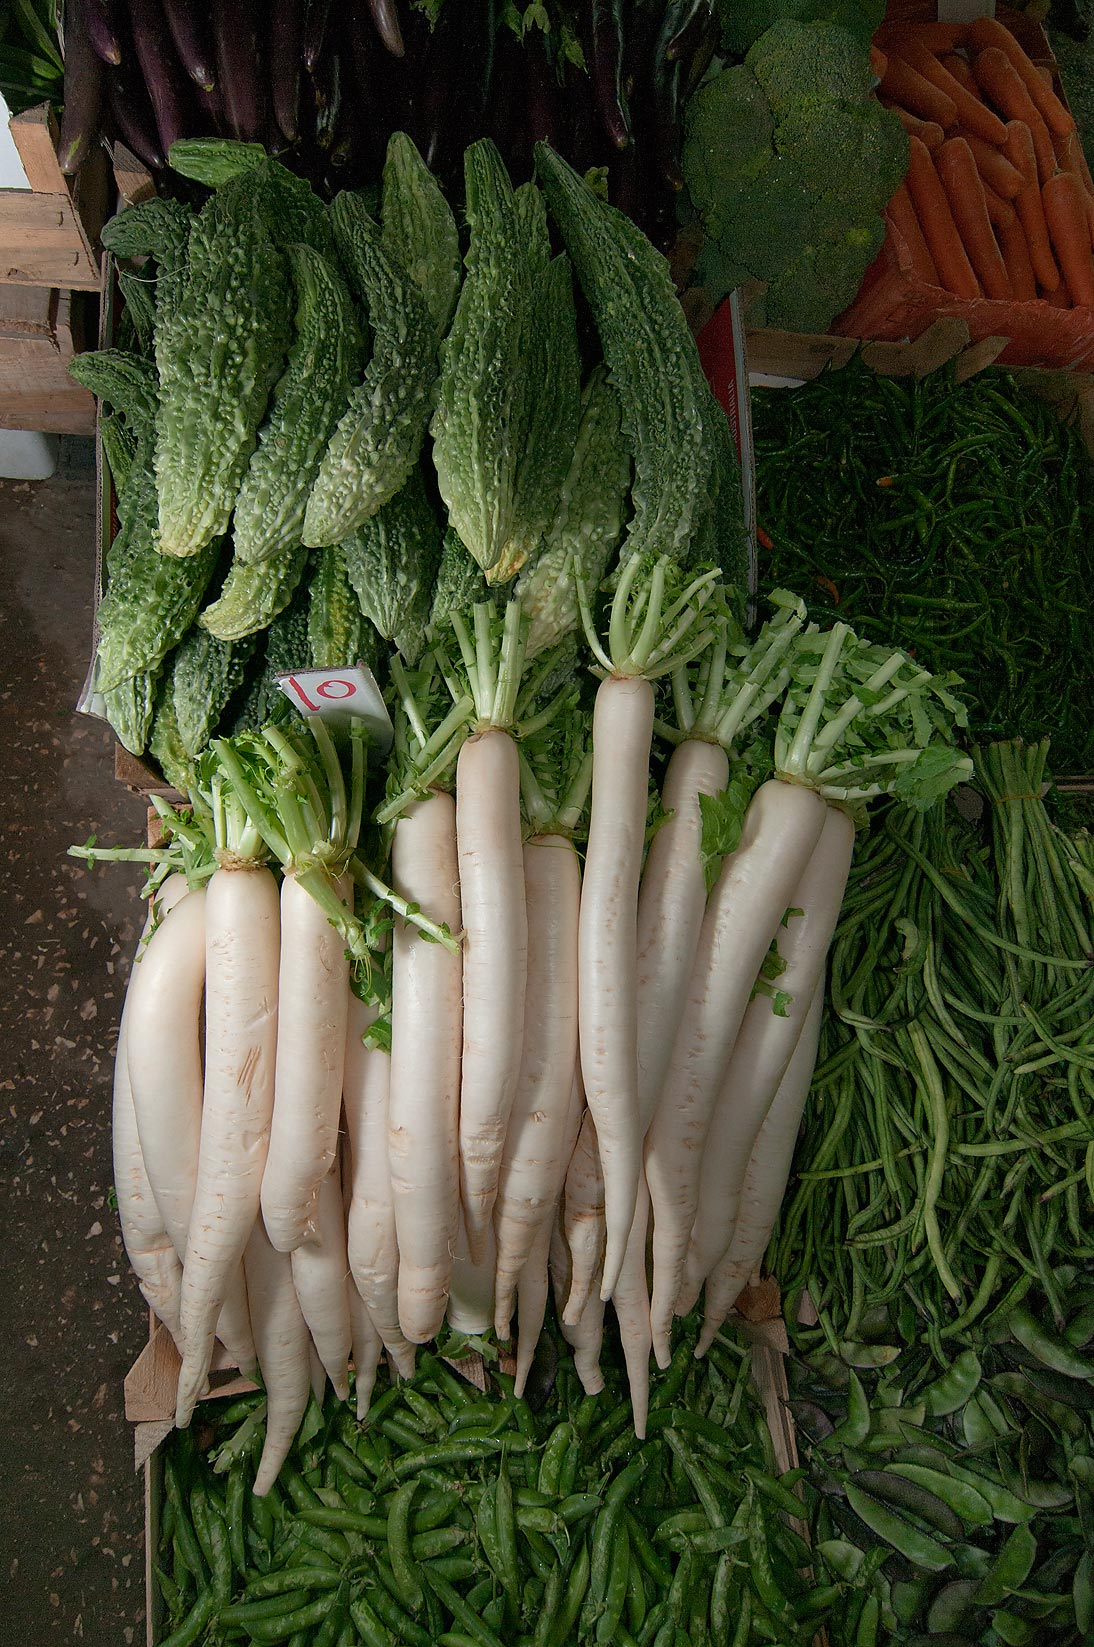 Horseradish in vegetable market. Doha, Qatar